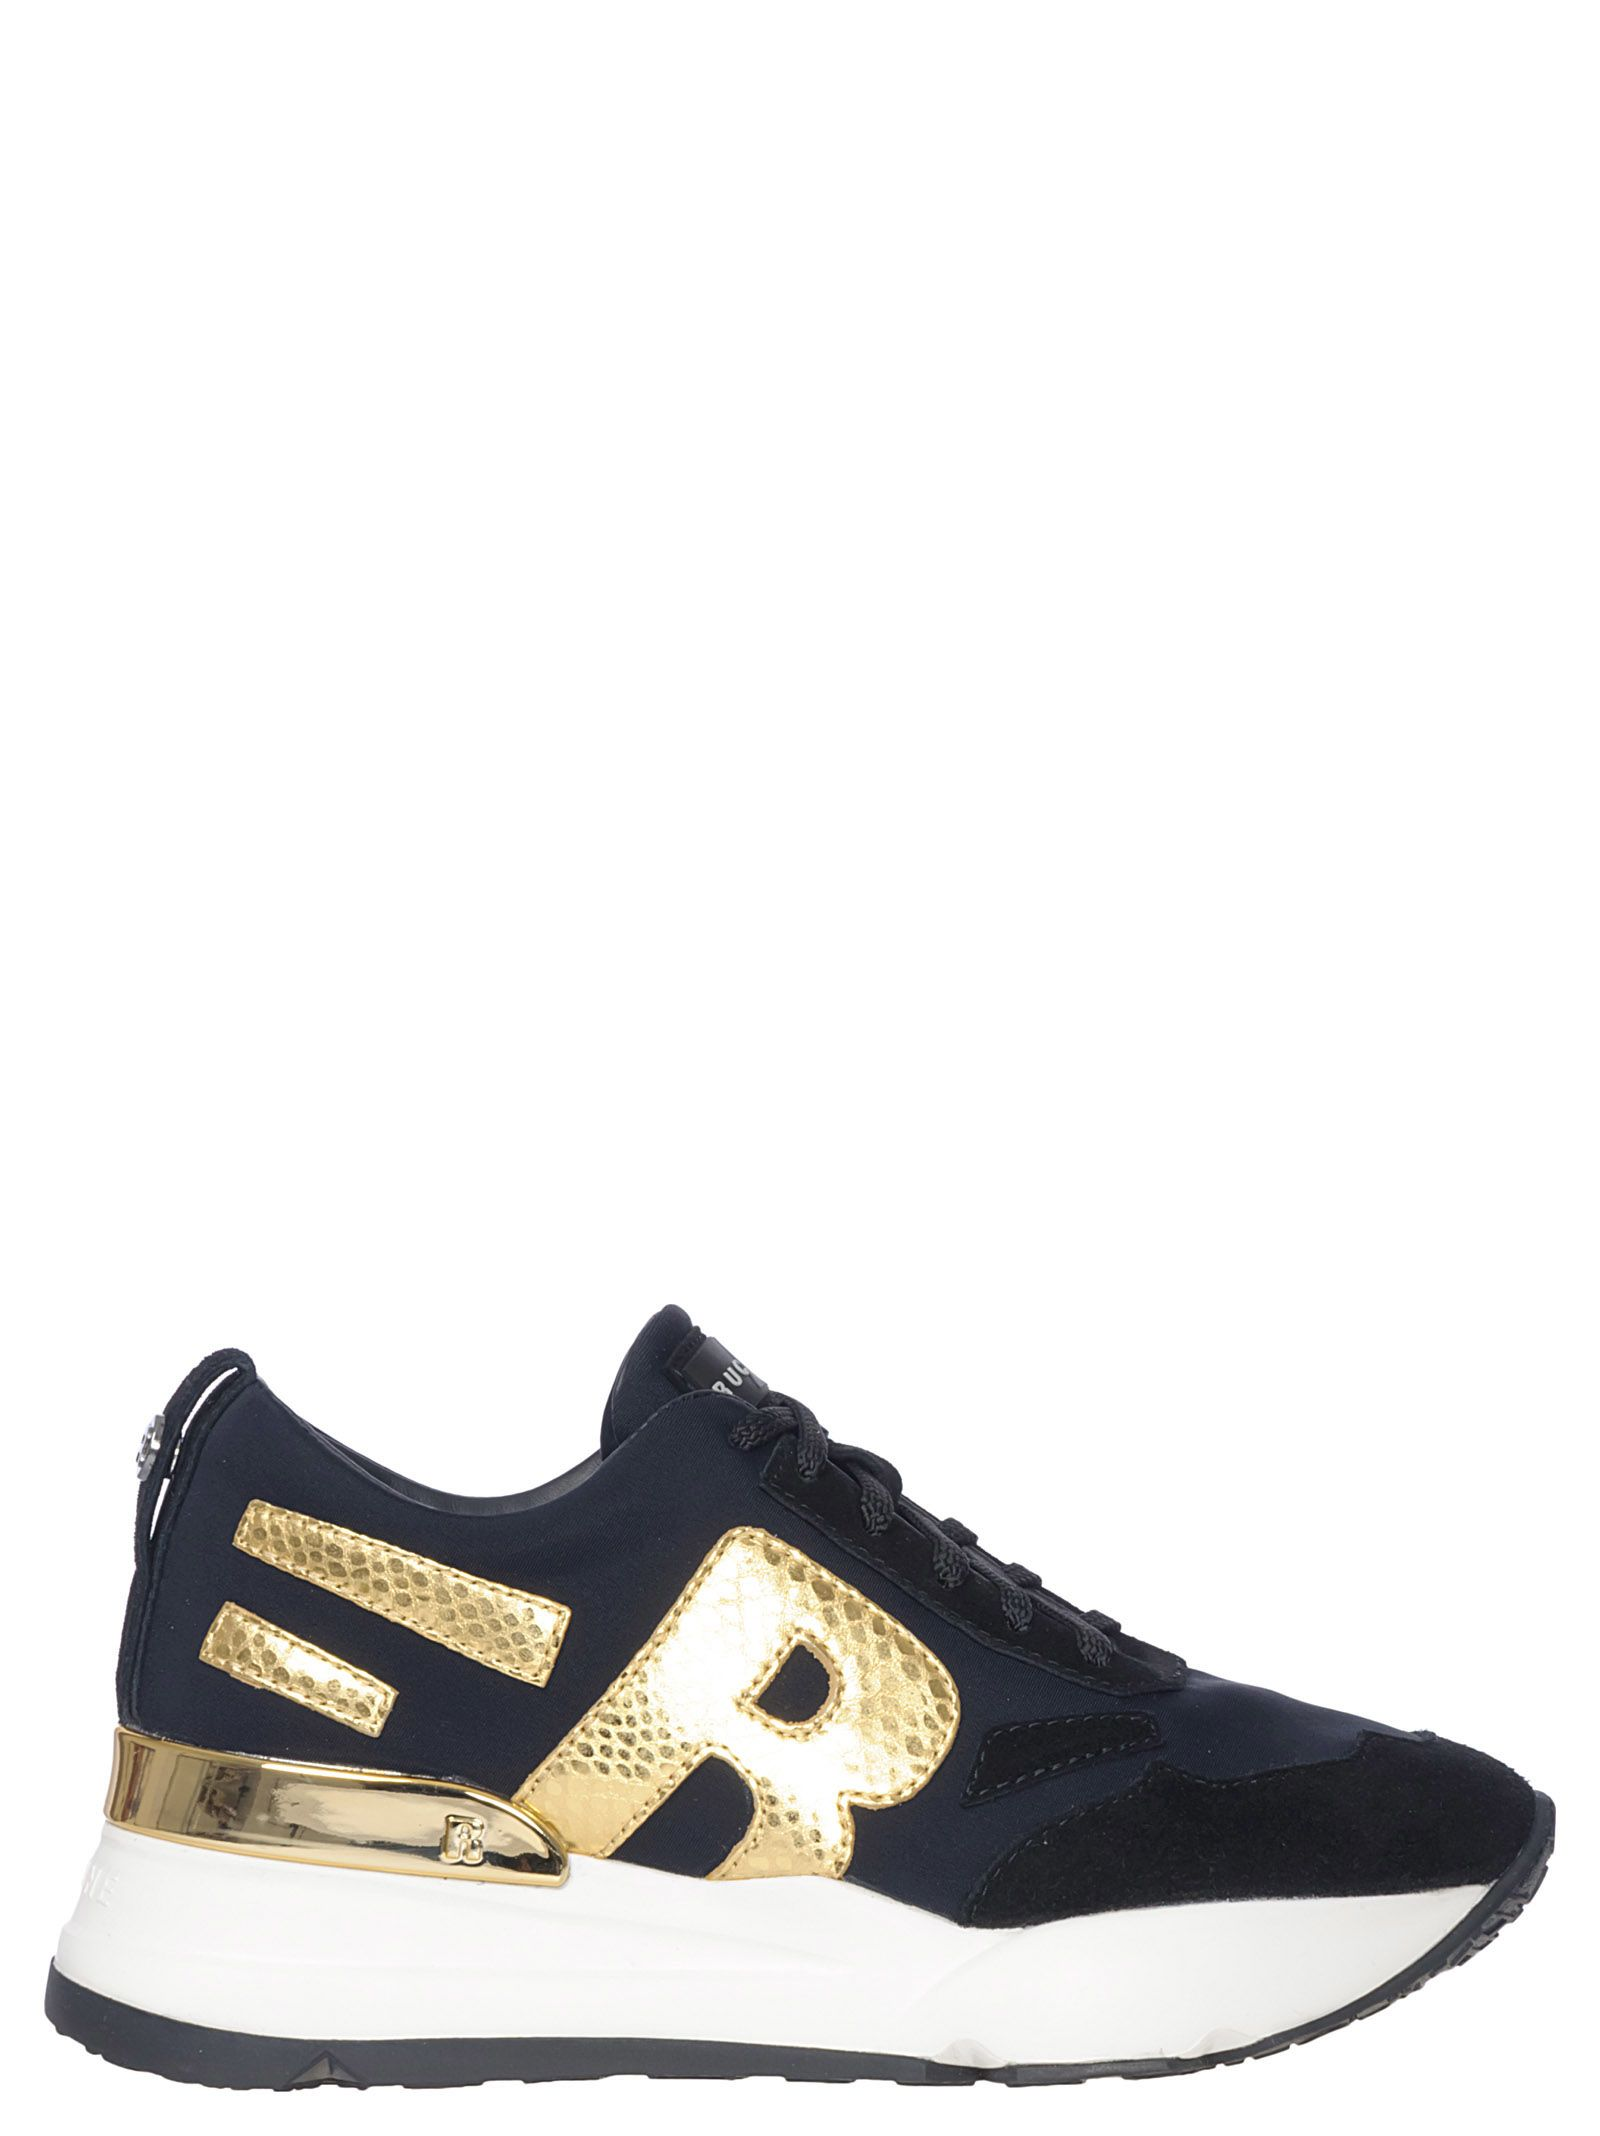 RUCO LINE Rucoline Sneakers Melog in Nero